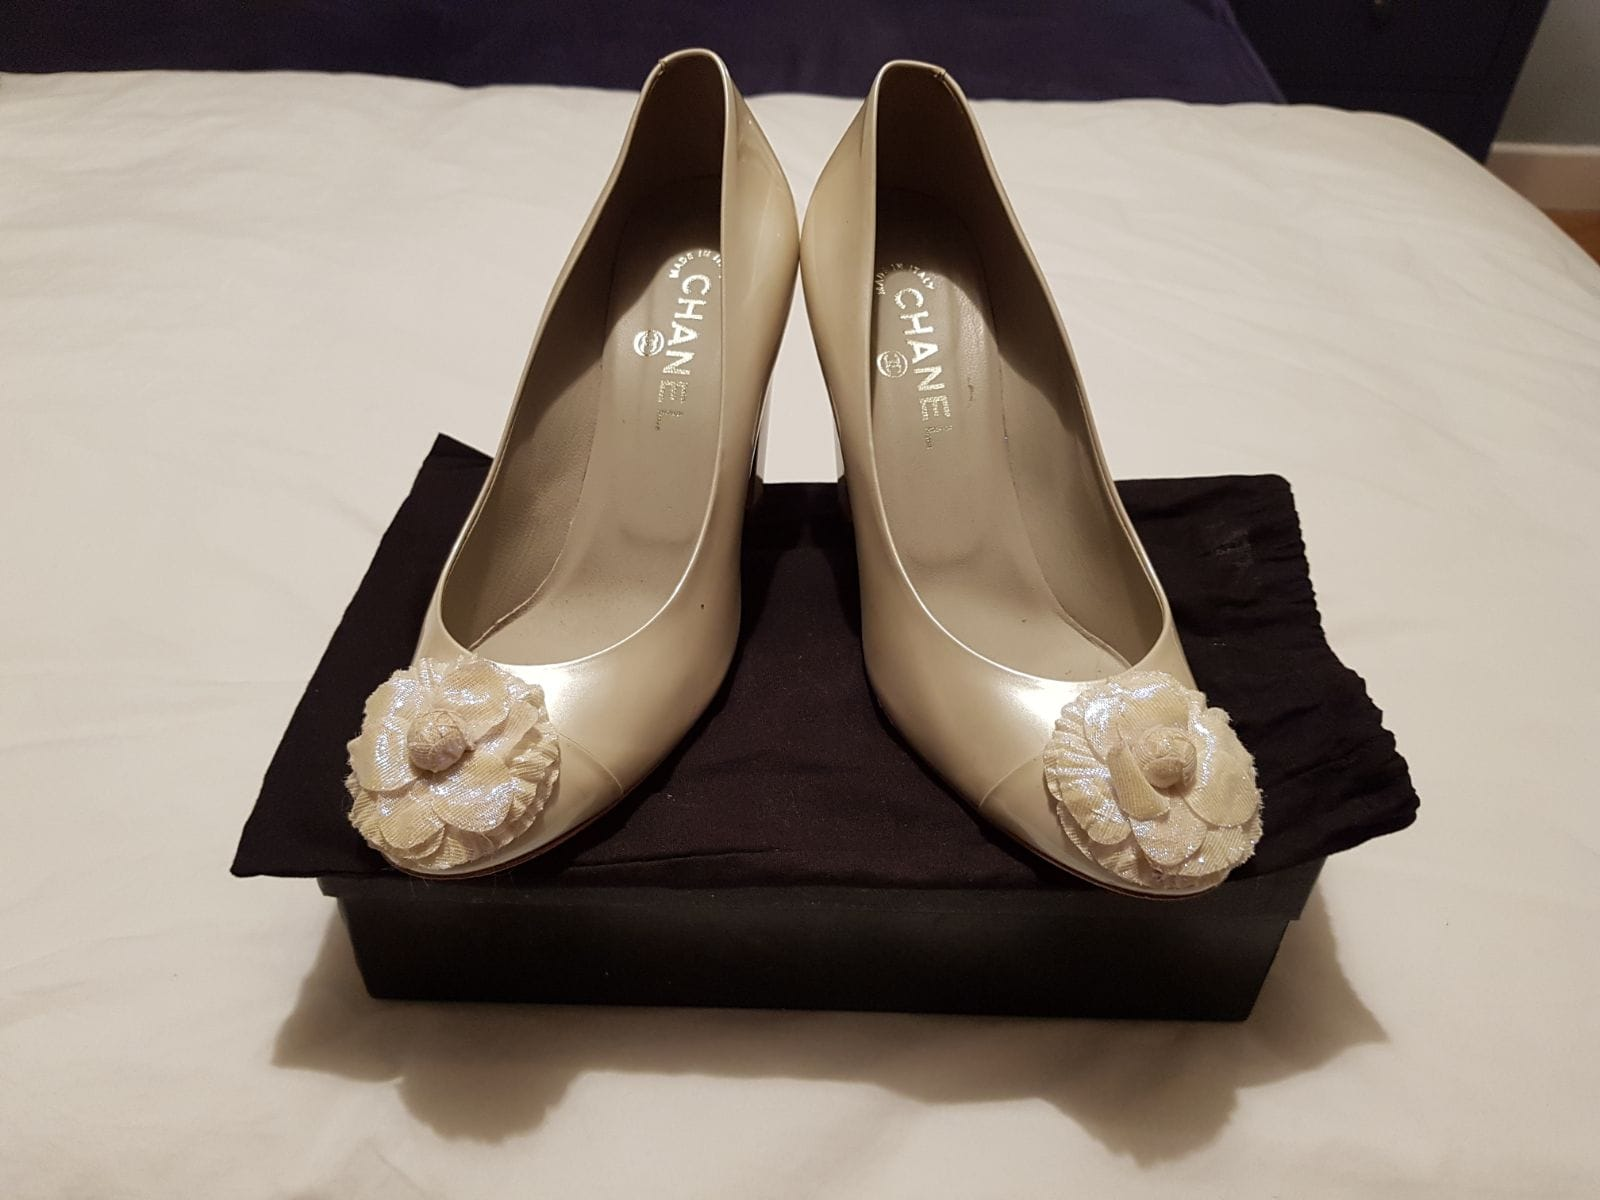 Chanel Bridal Shoes - Sell My Wedding Dress Online | Sell ... - photo #37